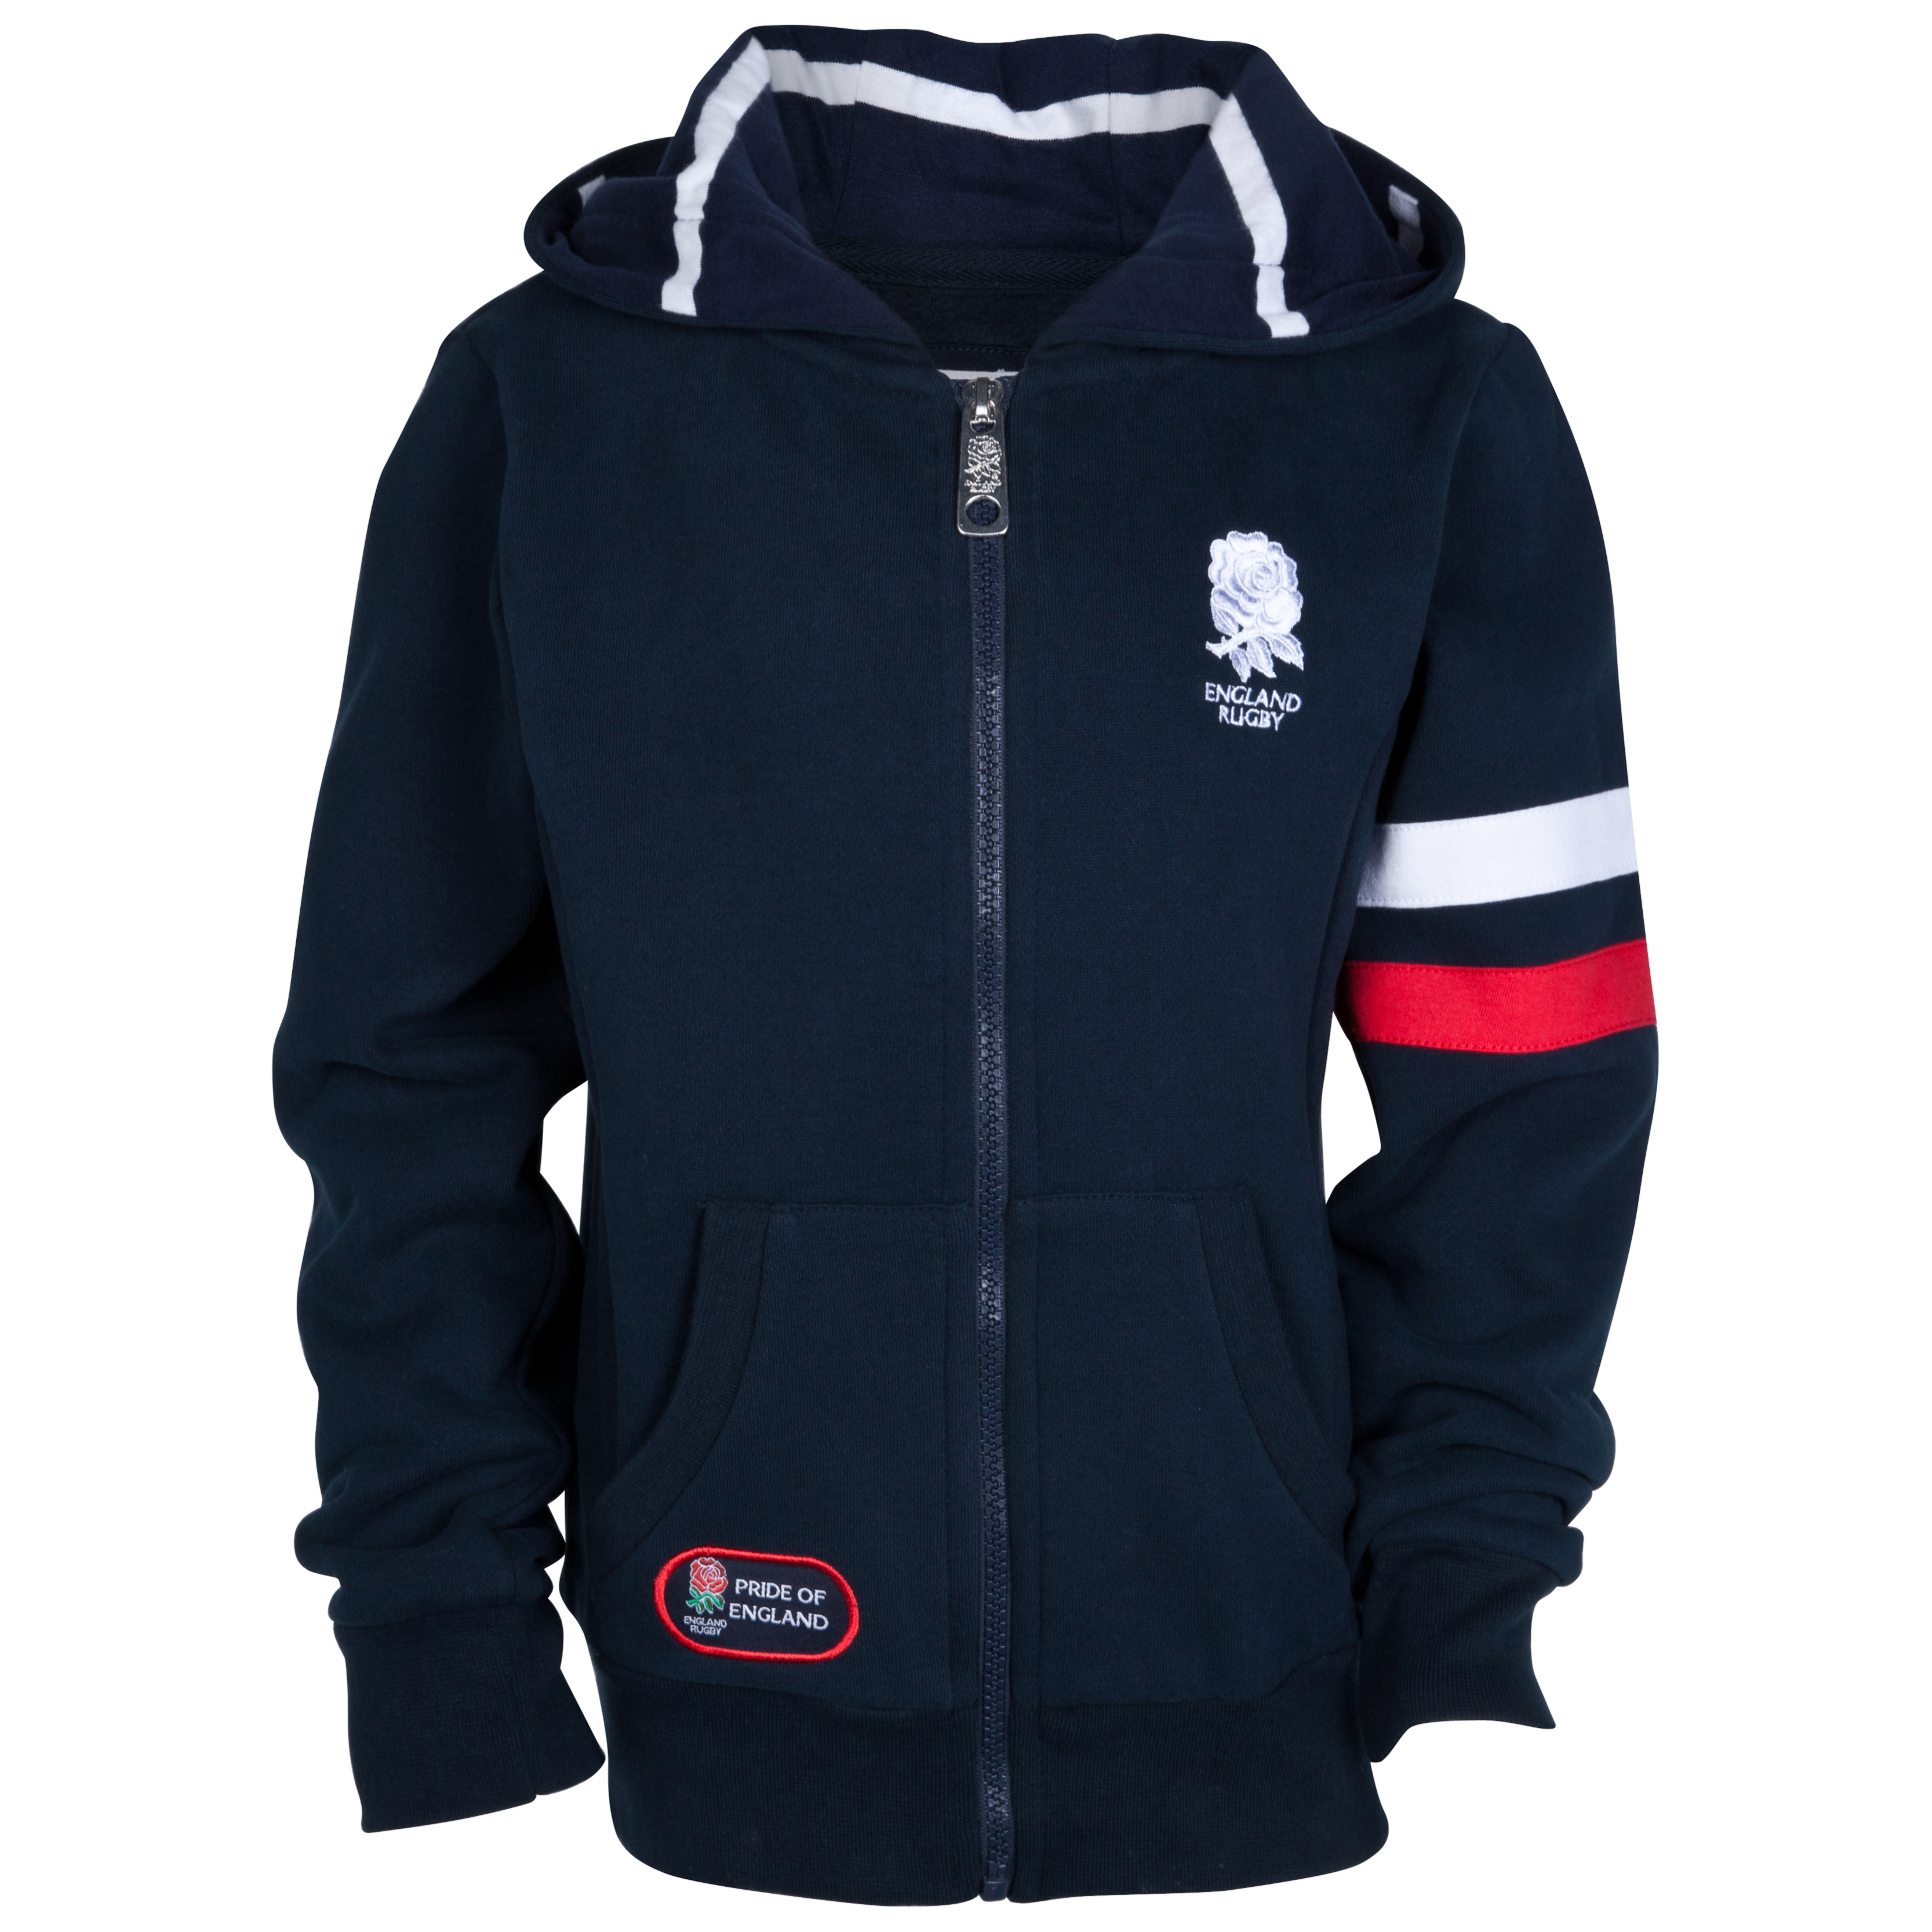 England Rugby Classic Collection Future Captain Hoody - Infant Boys